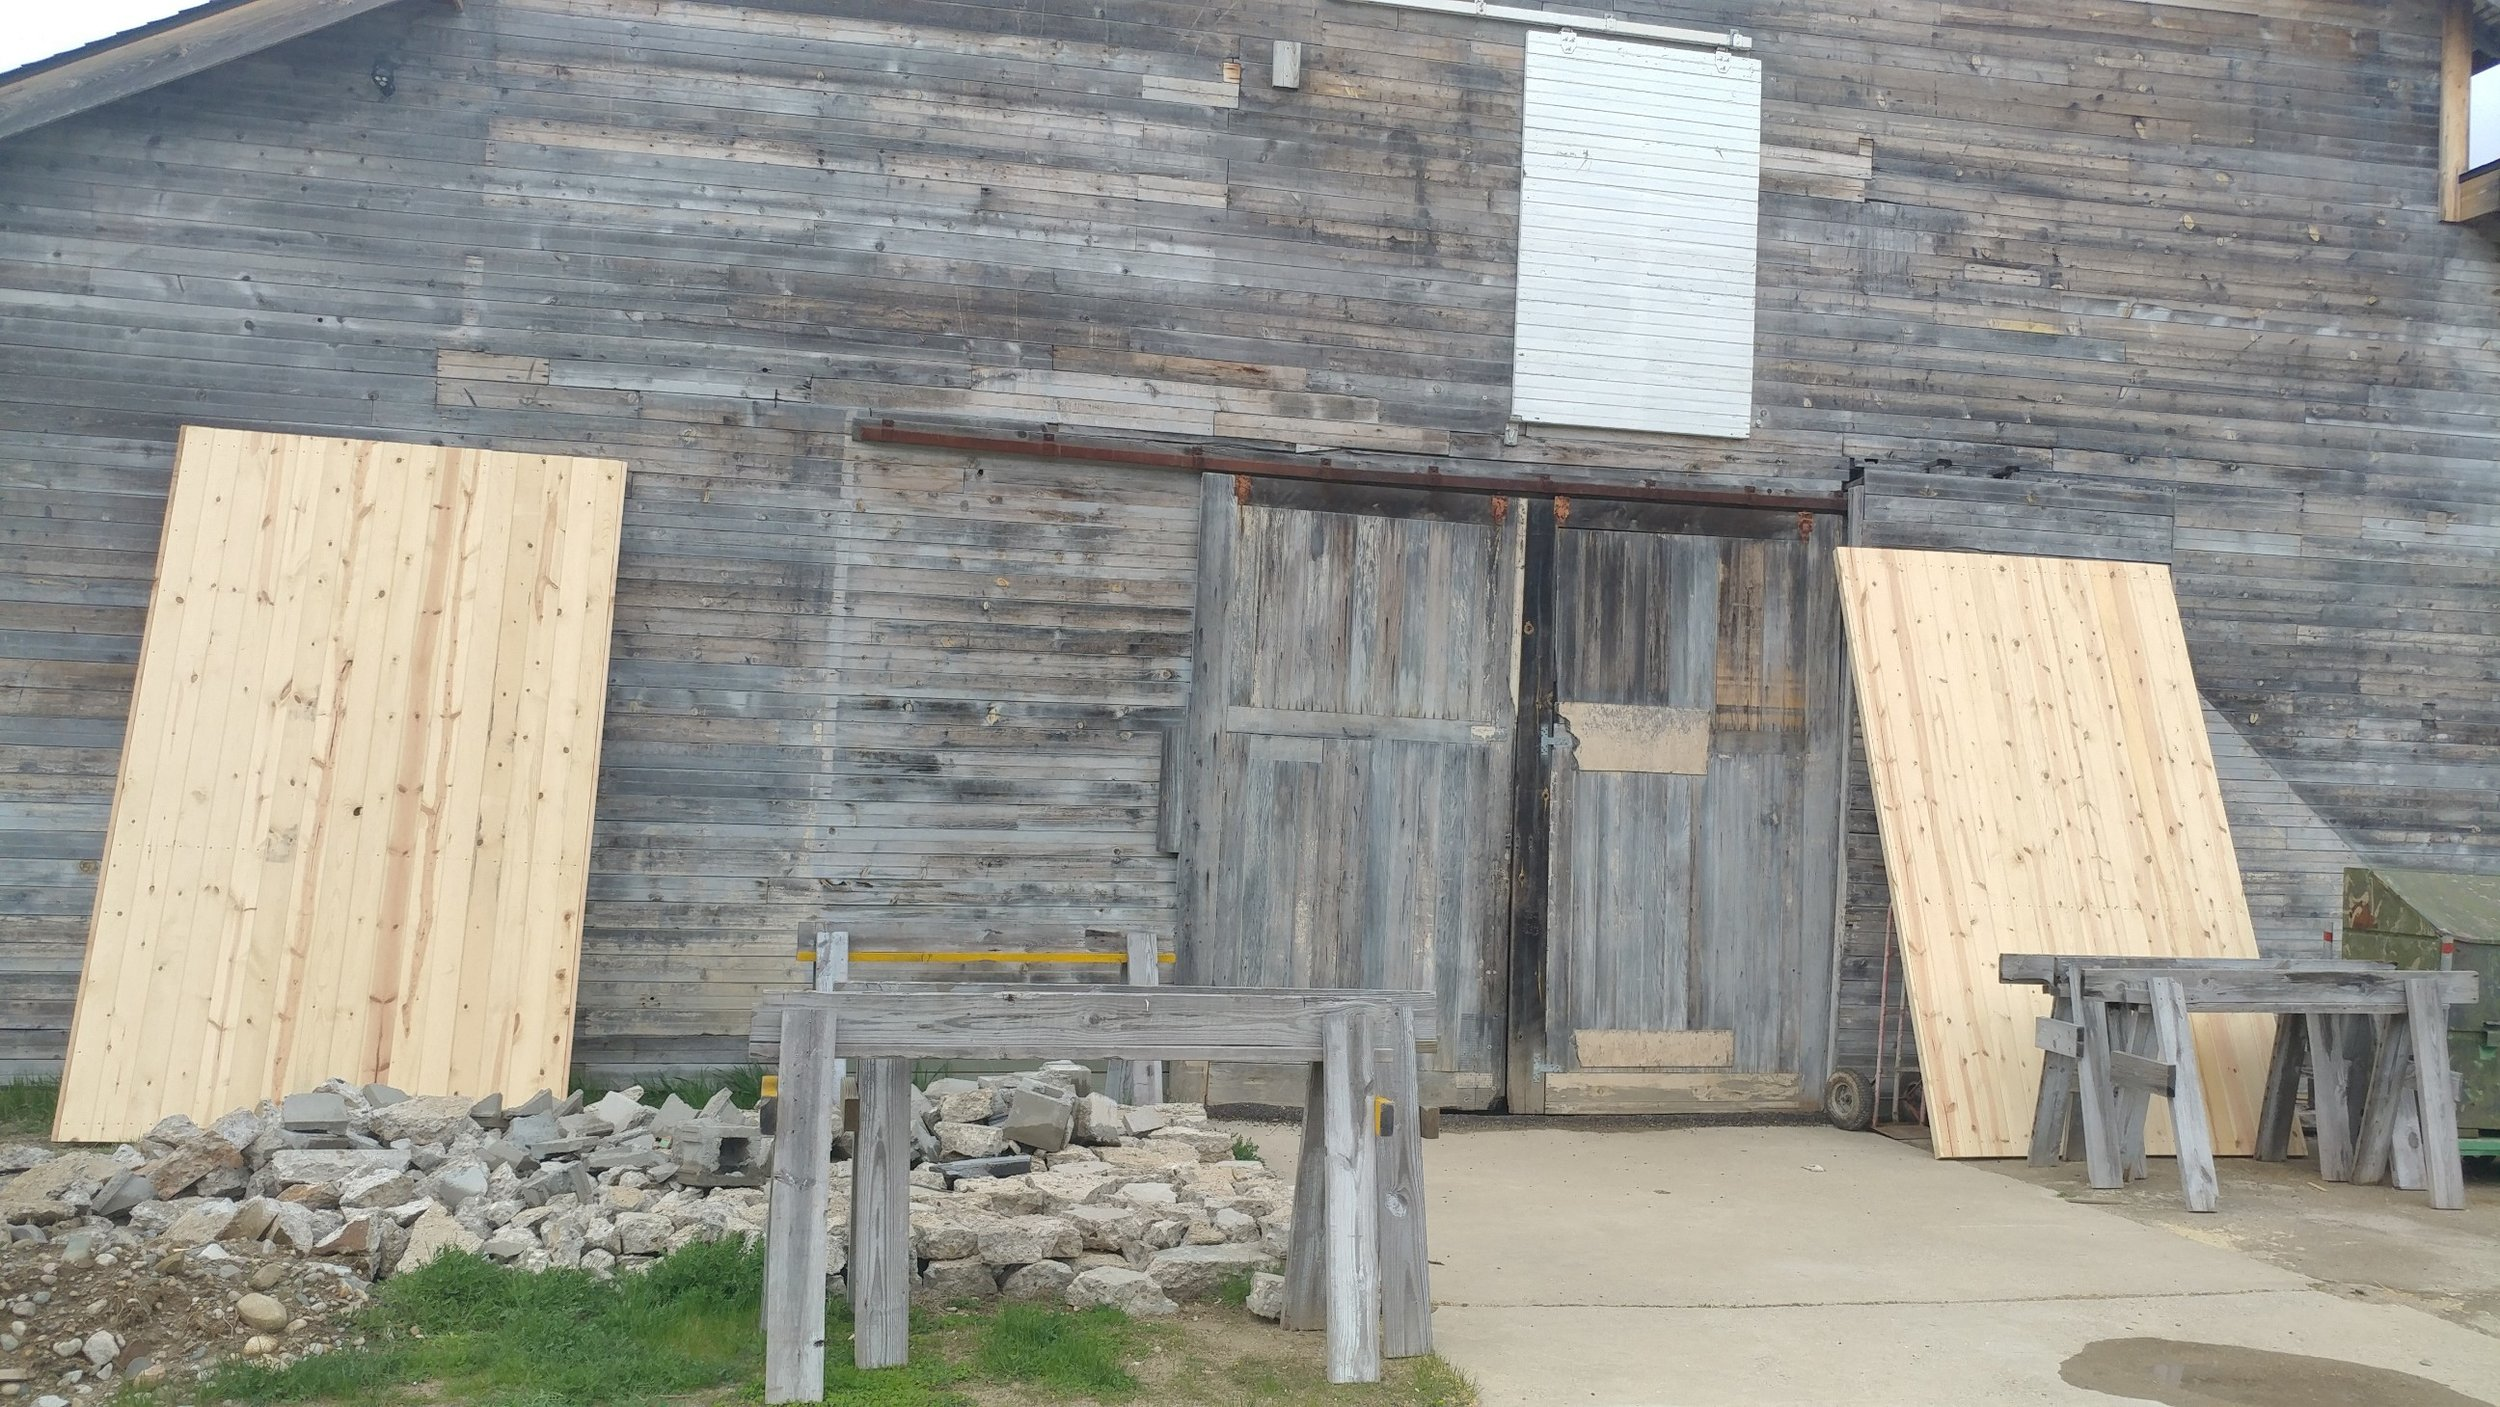 Above: 2 GIANT new rear doors for the Edsel Ford Barn